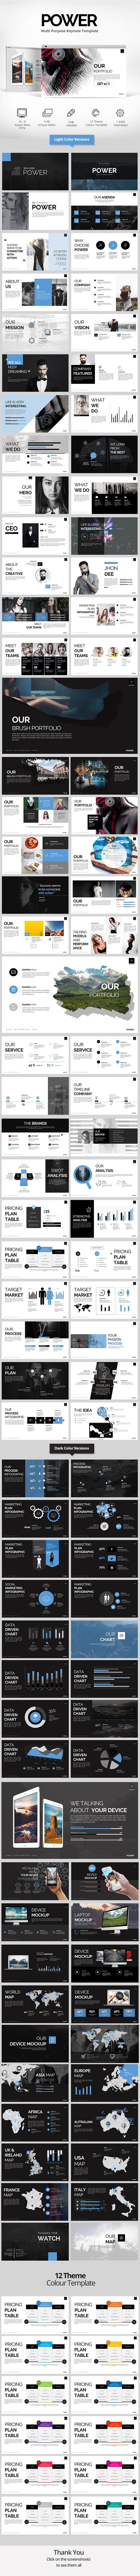 Power Keynote Templates #portfolio #studio • Download ➝ https://graphicriver.net/item/power-keynote-templates/19578825?ref=pxcr